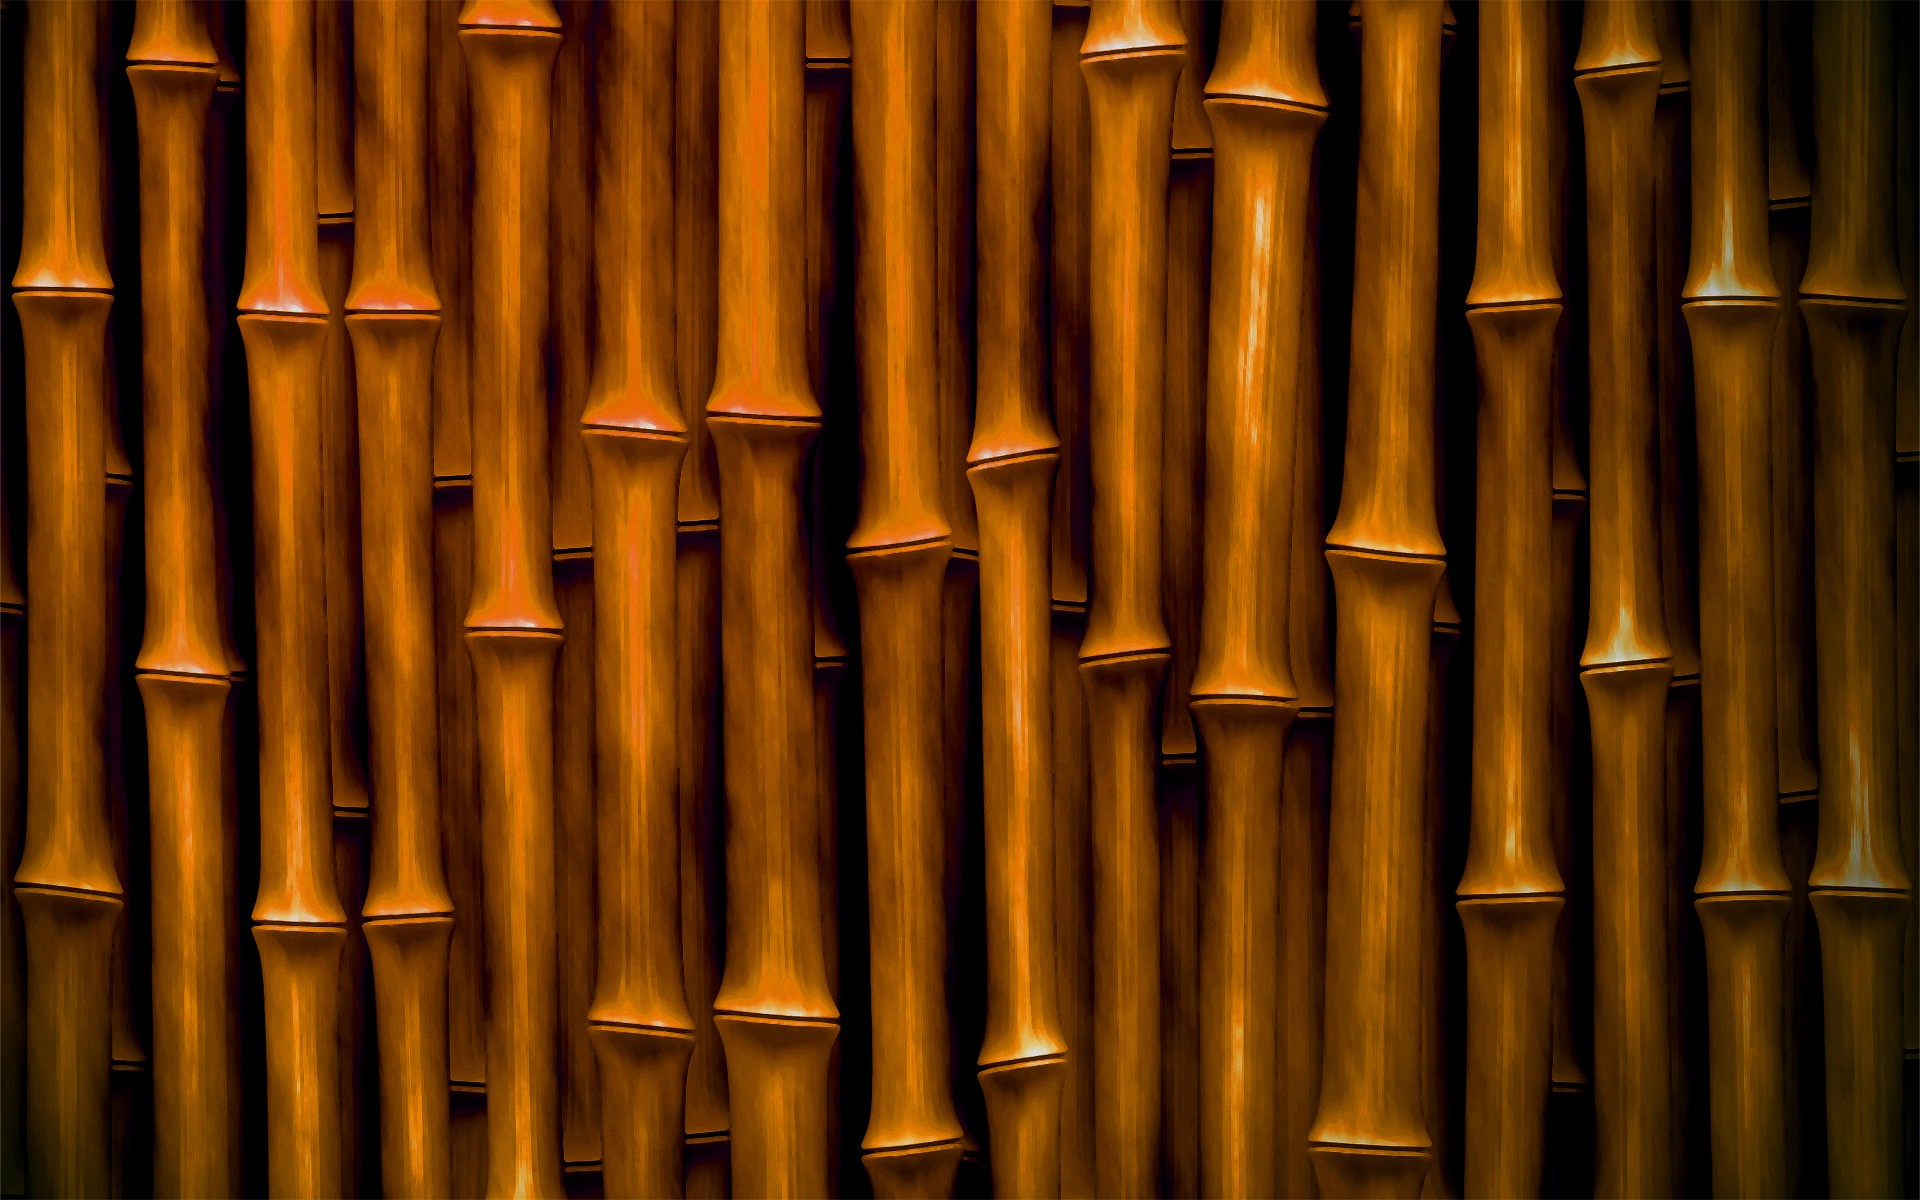 3d Wallpapers In Kenya Abstract Bamboo Wallpapers Hd Desktop And Mobile